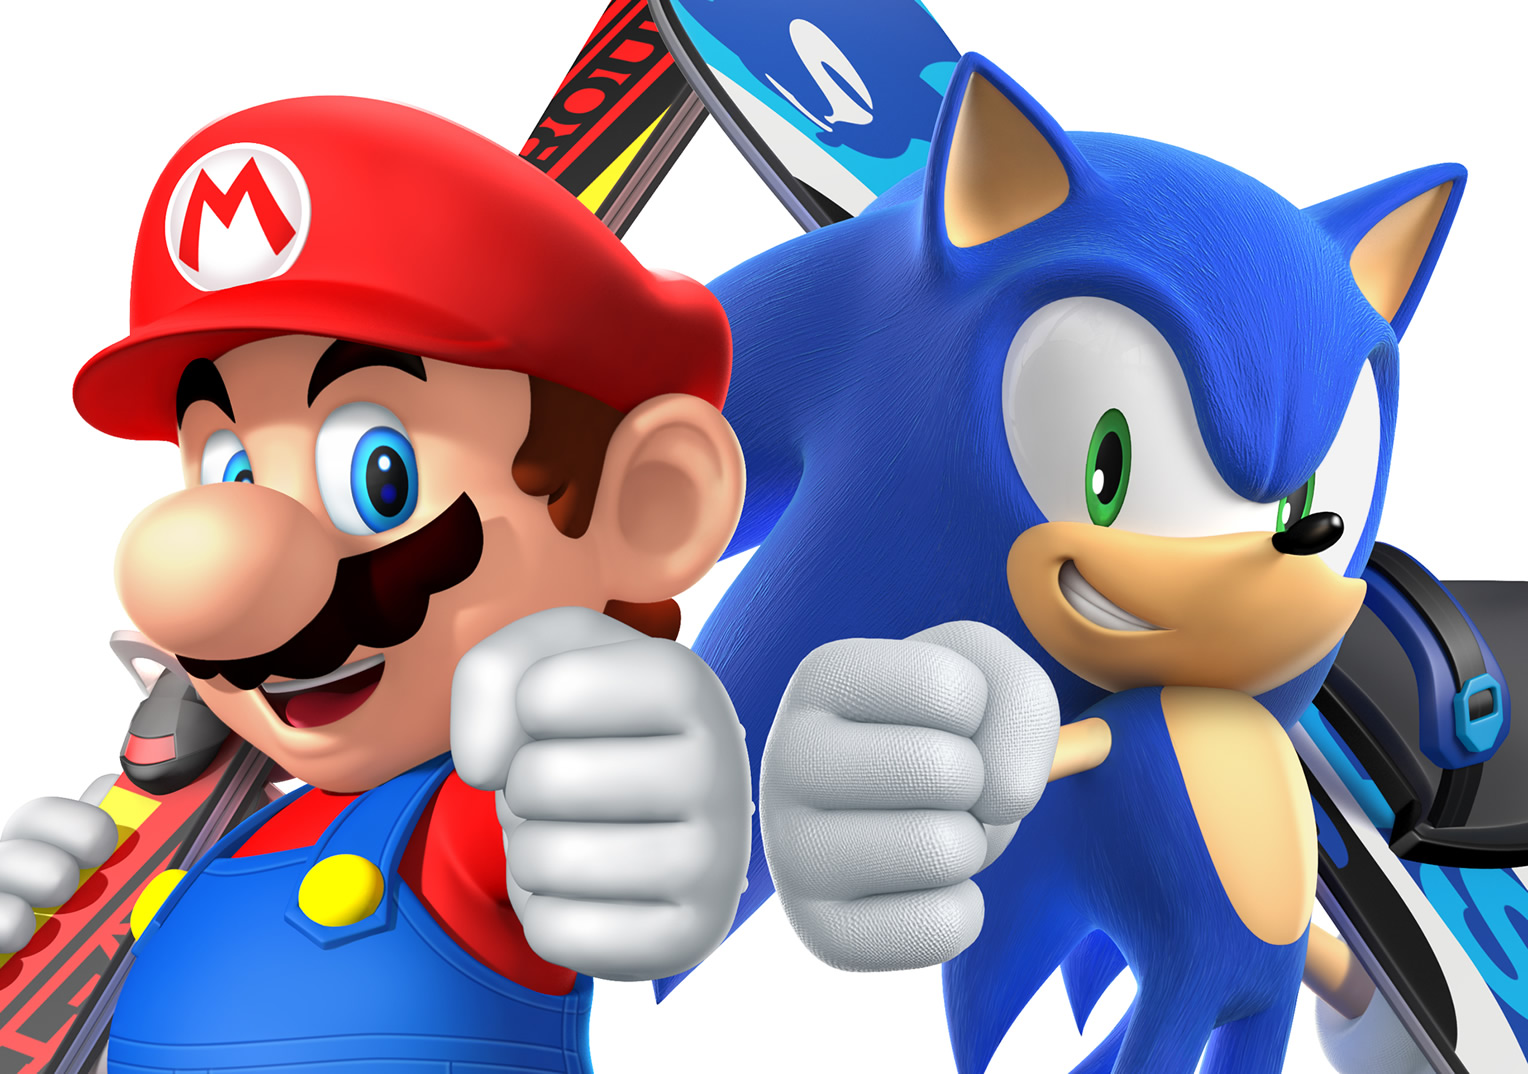 PN Review: Mario & Sonic at the Sochi 2014 Olympic Winter Games